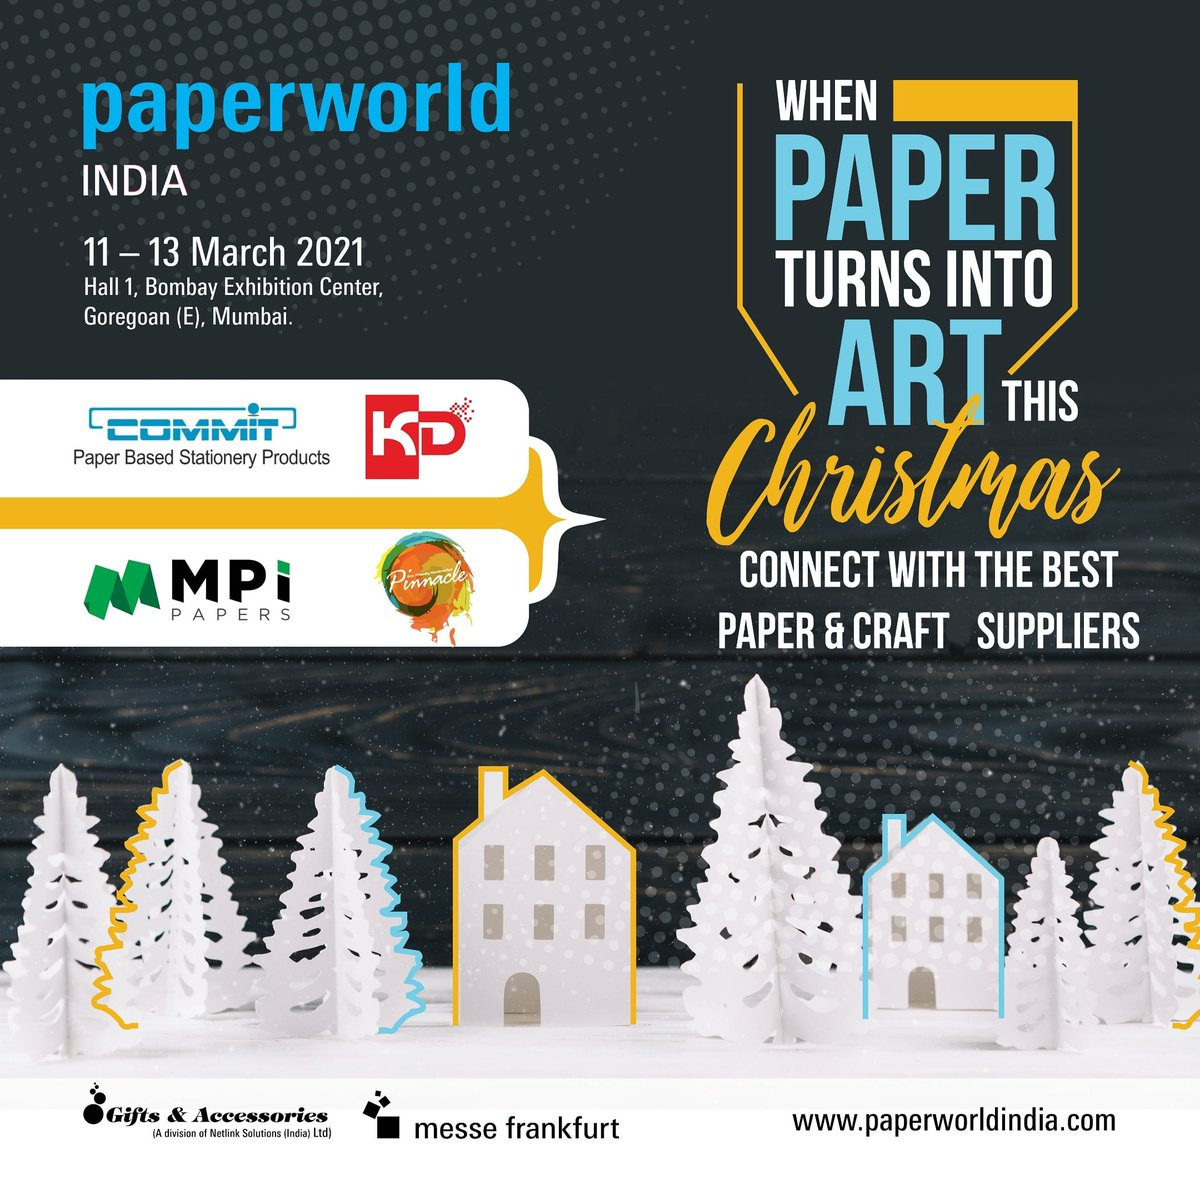 Vendors At Ix Christmas Connection 2021 Paperworld India On Twitter Hellodecember Christmasseason Connect Network Grow Your Business Visit The Show From 11 13 March 2021 Bombay Exhibition Center Mumbai Visit Our Website Https T Co Ycsx4lfexn Christmastime Christmas